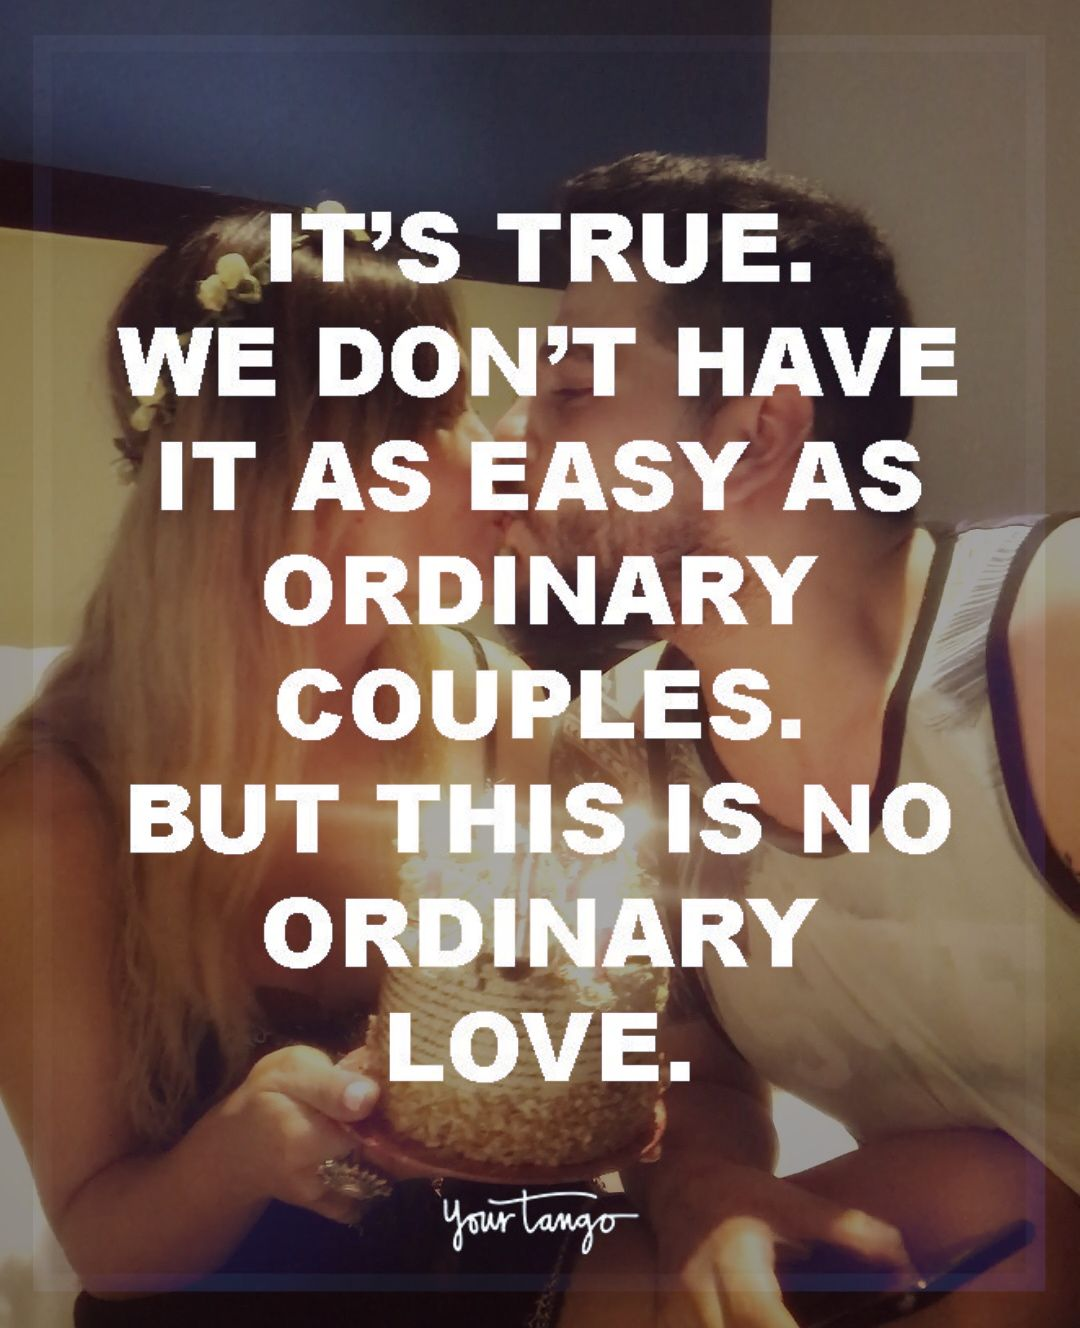 Love Quote U0026 Saying Image Description U201cItu0027s True. We Donu0027t Have It As Easy  As Ordinary Couples. But This Is No Ordinary Love.